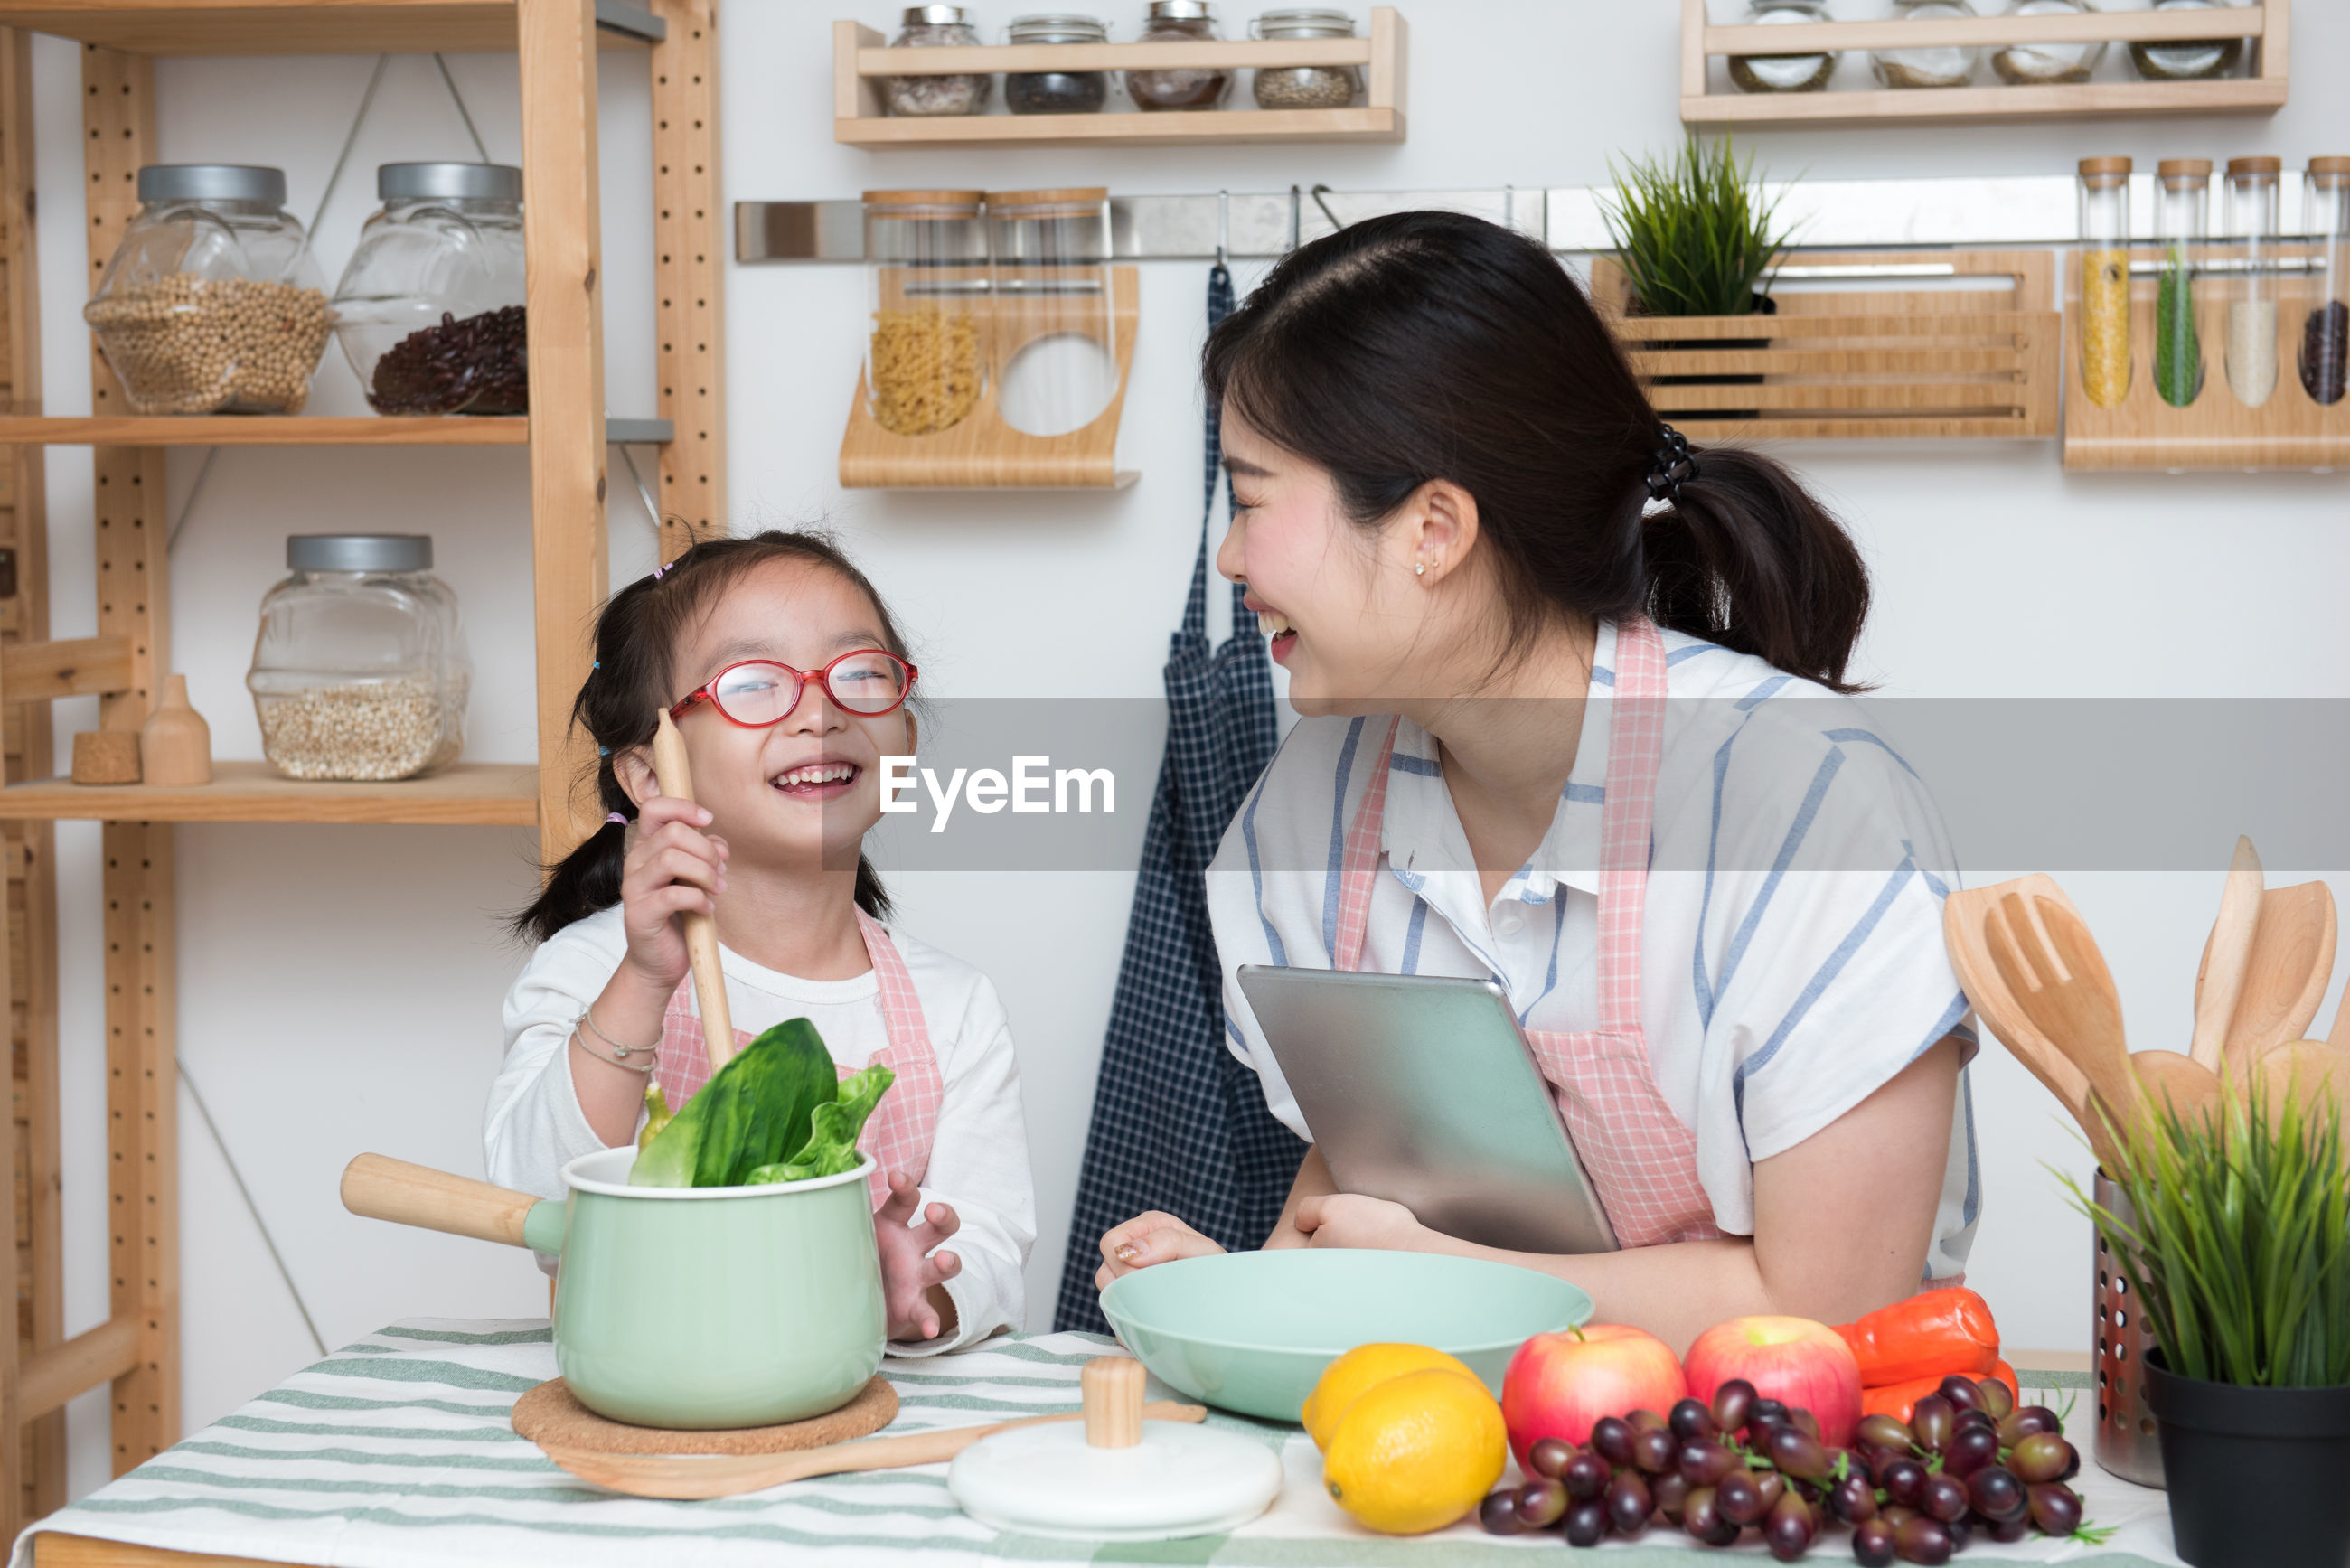 Cheerful mother and daughter preparing food in kitchen